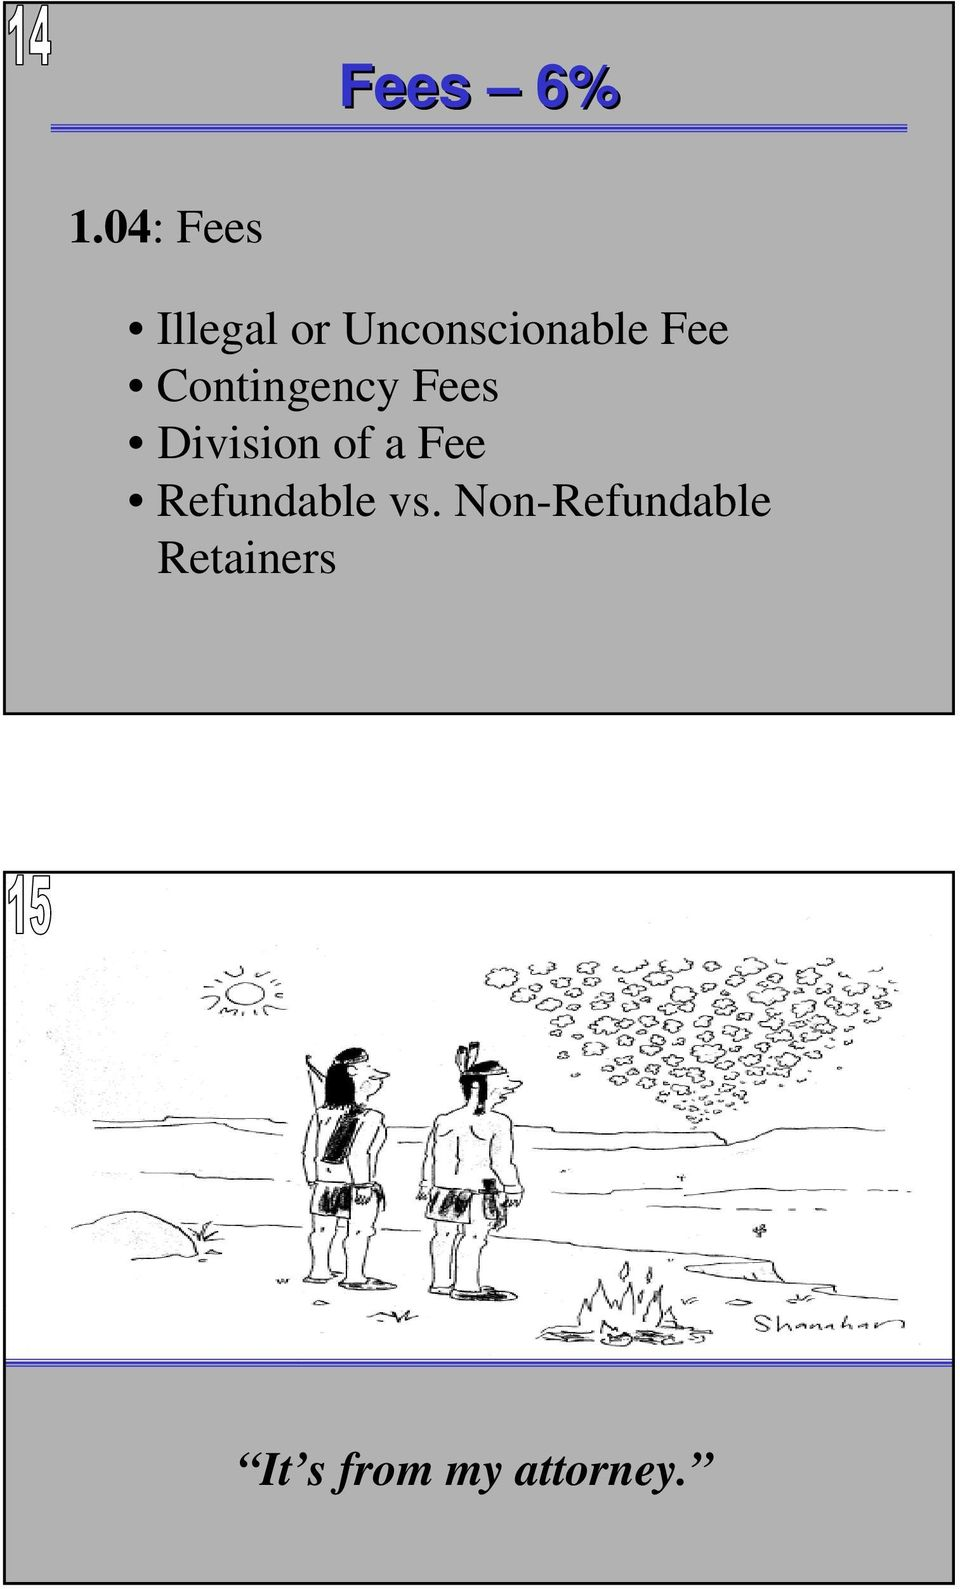 Fee Contingency Fees Division of a